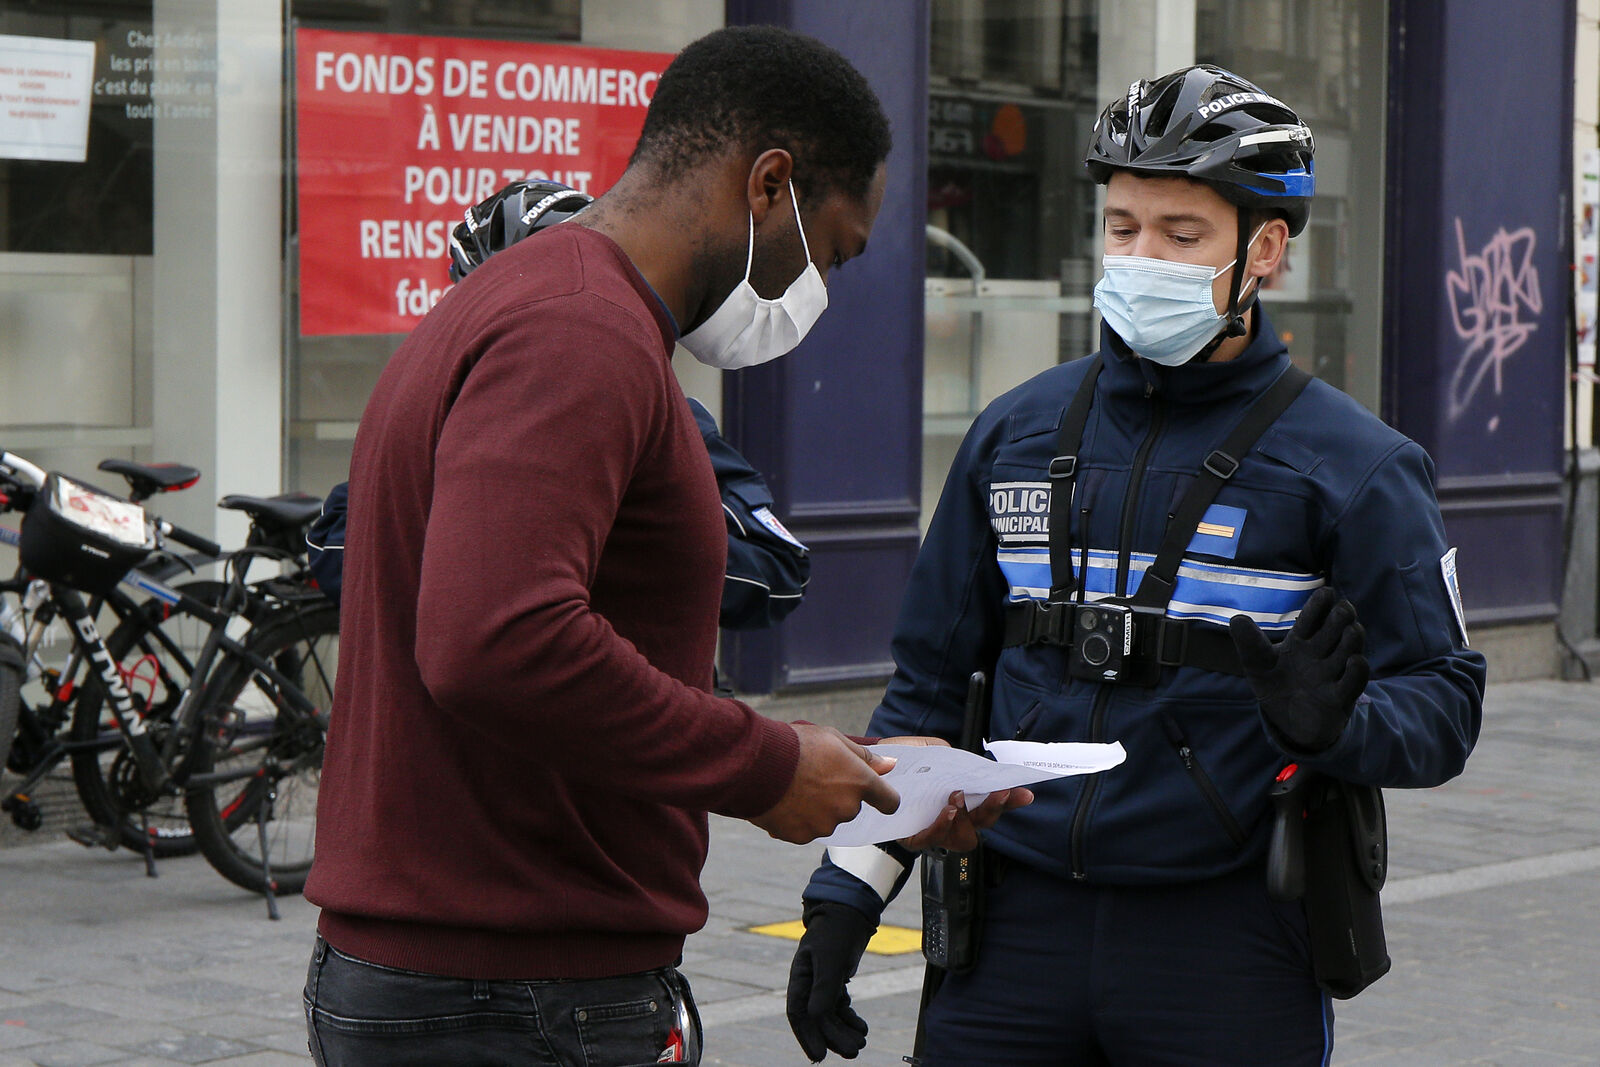 Policemen controls a resident in Lille northern France, Friday, Oct. 30, 2020. (AP Photo/Michel Spingler)